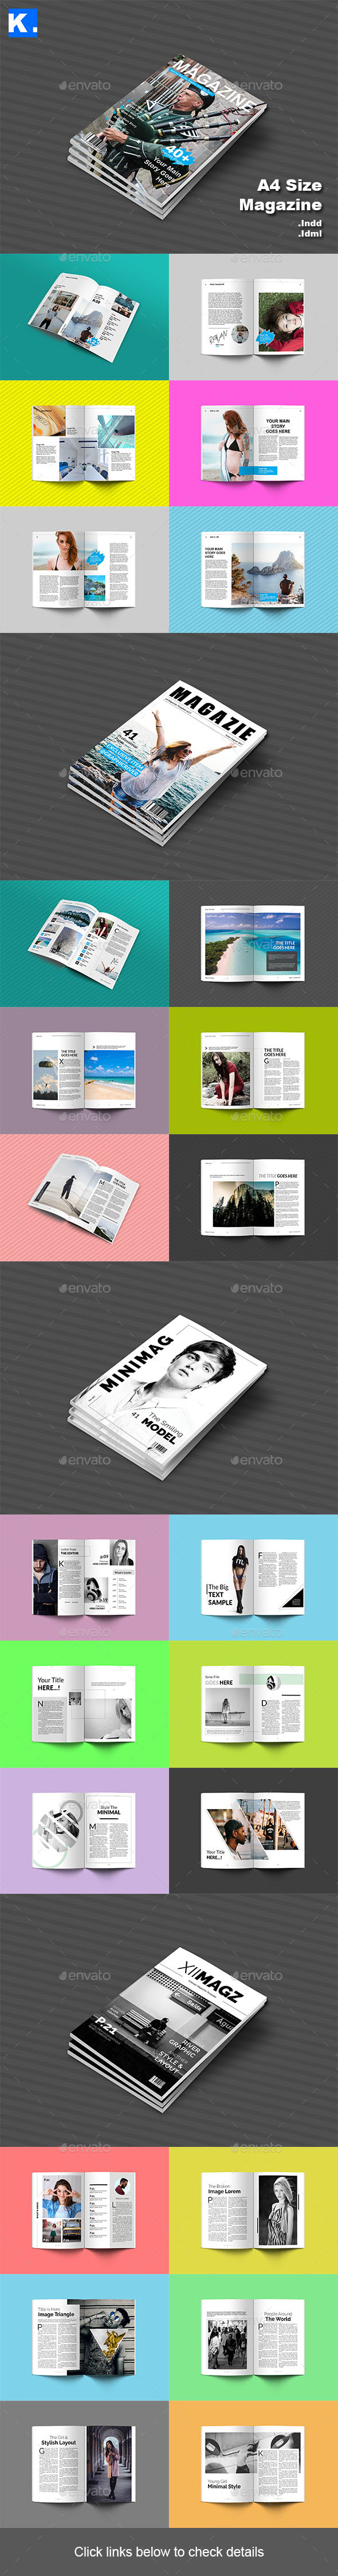 Magazine Bundle 1 - Magazines Print Templates